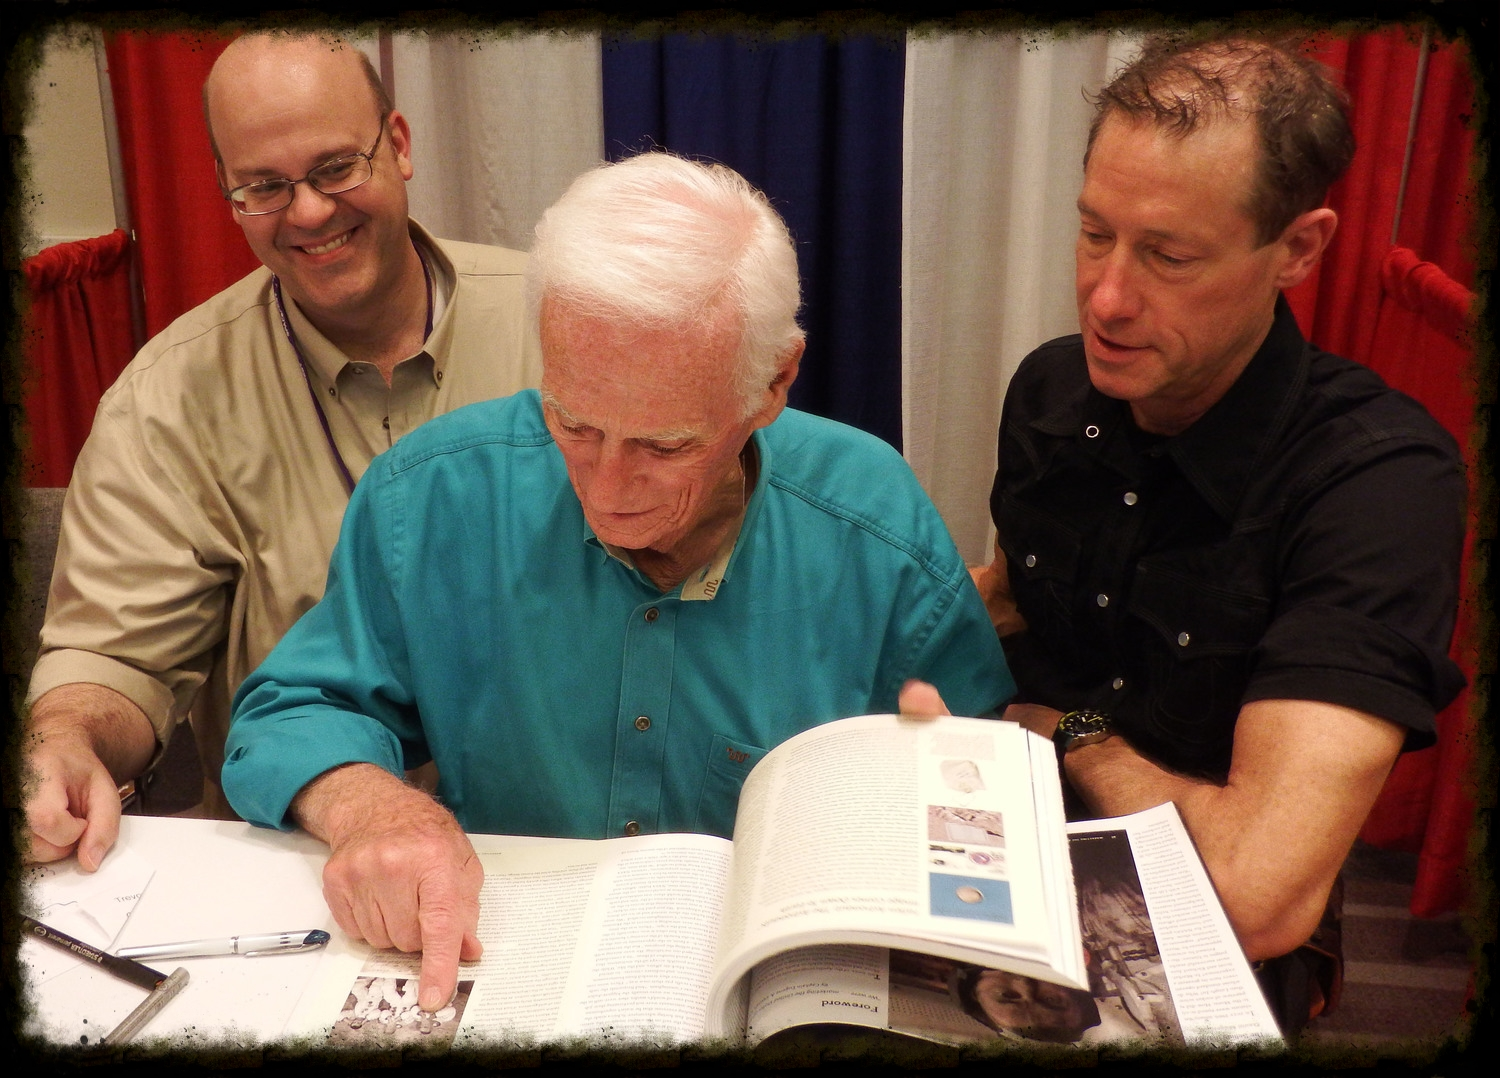 Richard Jurek (left), Astronaut Gene Cernan (center), and David Meerman Scott (right), enjoy flipping through Marketing the Moon with Gene and discussing some of his favorite sections in the book.